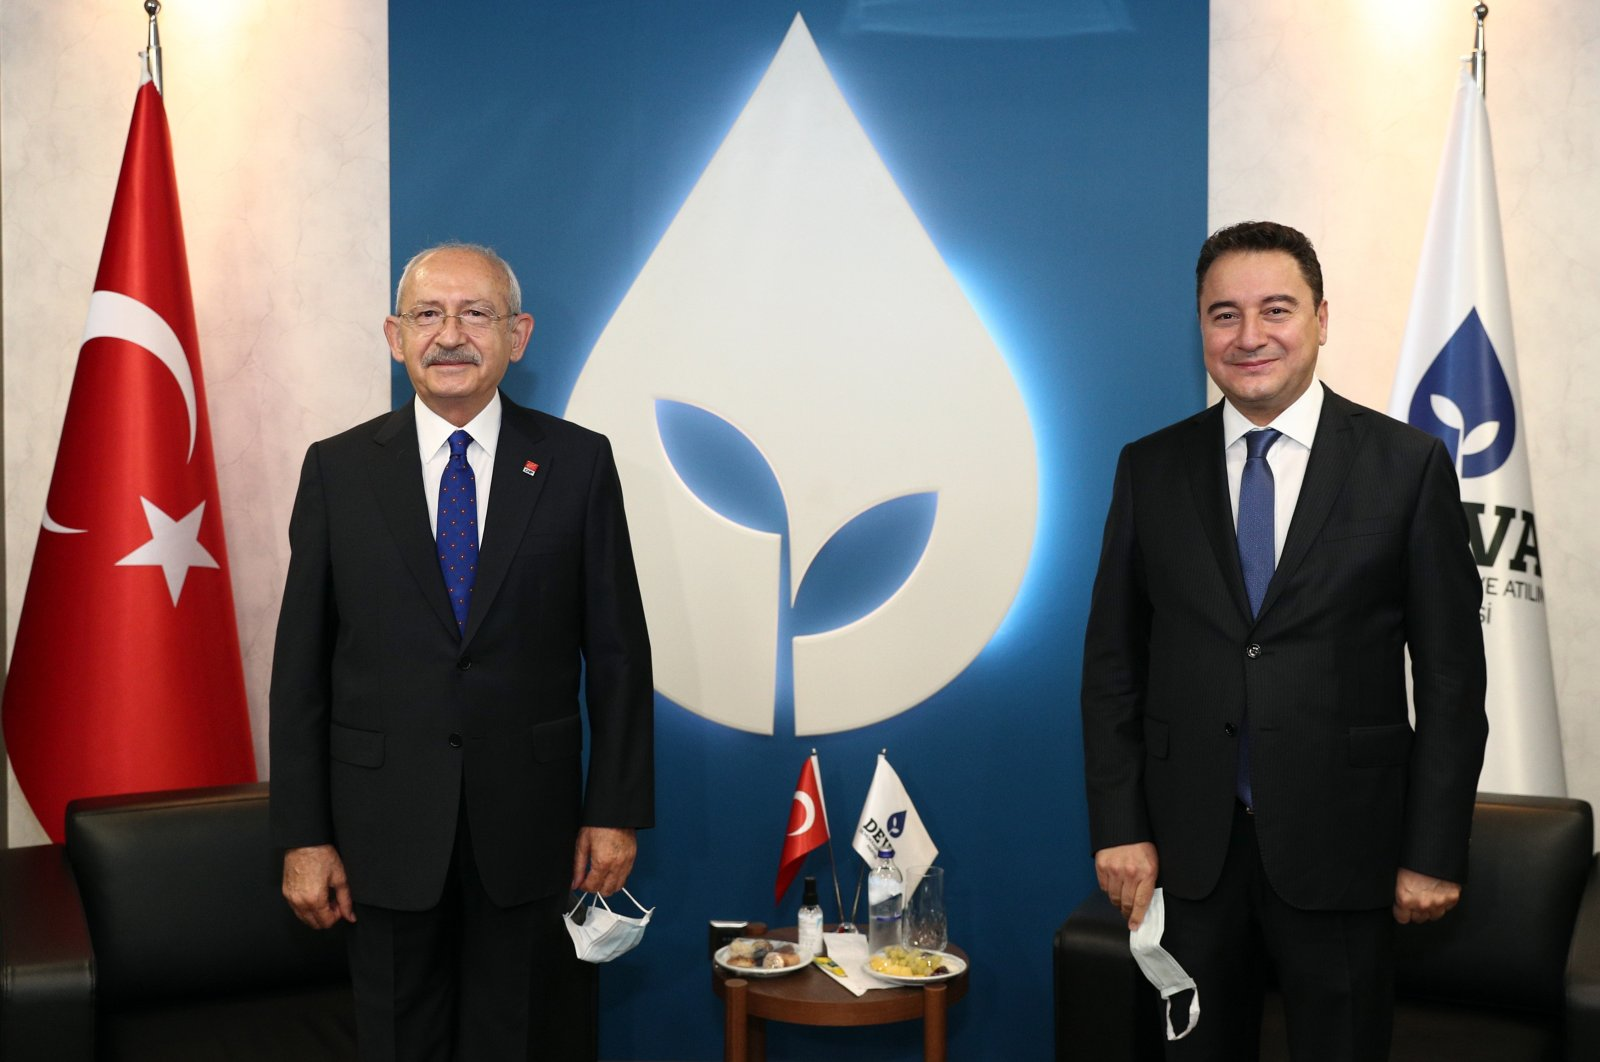 Ali Babacan (R), the former deputy prime minister and the head of the Democracy and Progress Party (DEVA), and Kemal Kılıçdaroğlu, the head of the main opposition Republican People's Party (CHP), pose during a meeting in Ankara, Turkey, Oct. 8, 2020. (AA Photo)